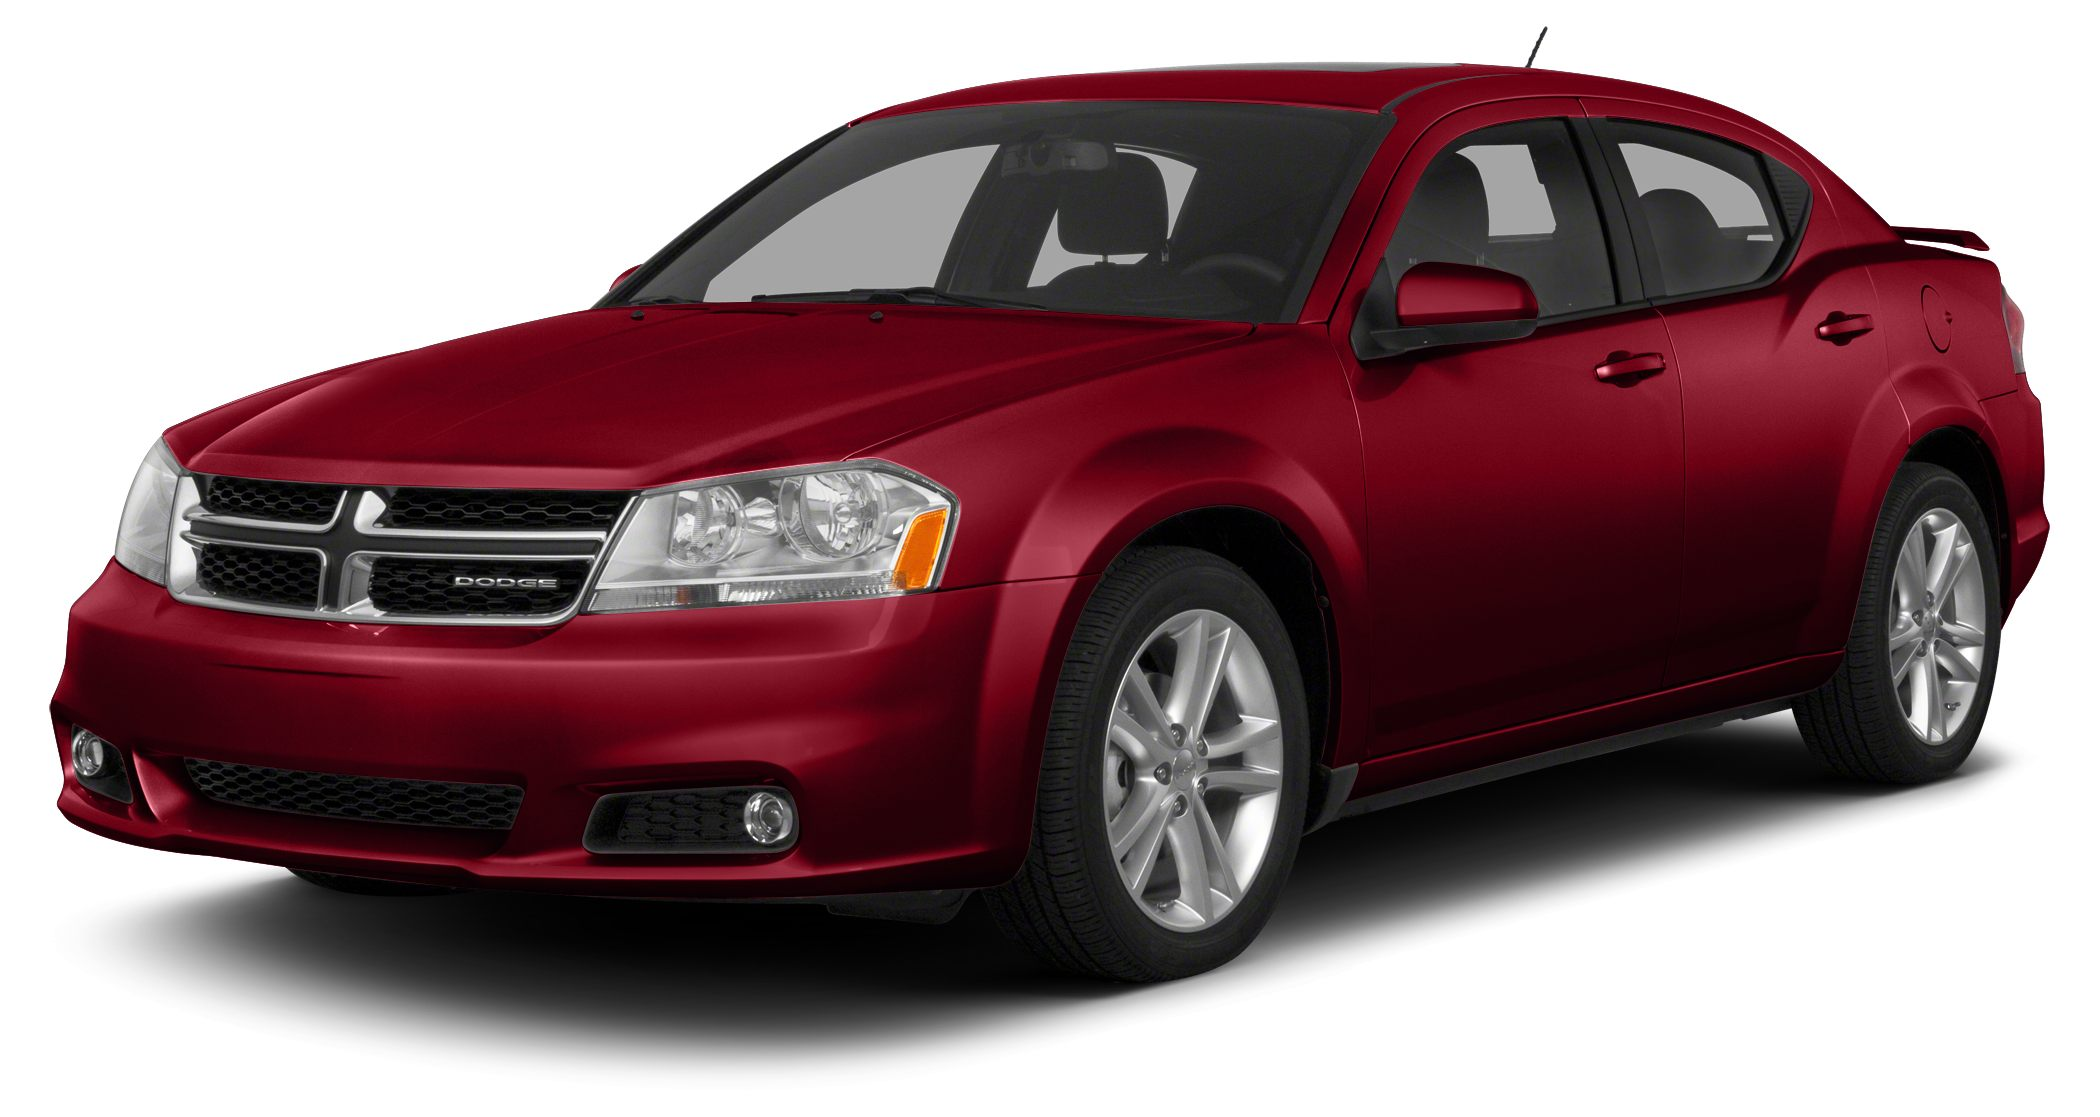 2013 Dodge Avenger SE Power group Auto transmission AC Loaded All the right ingredients Great sa